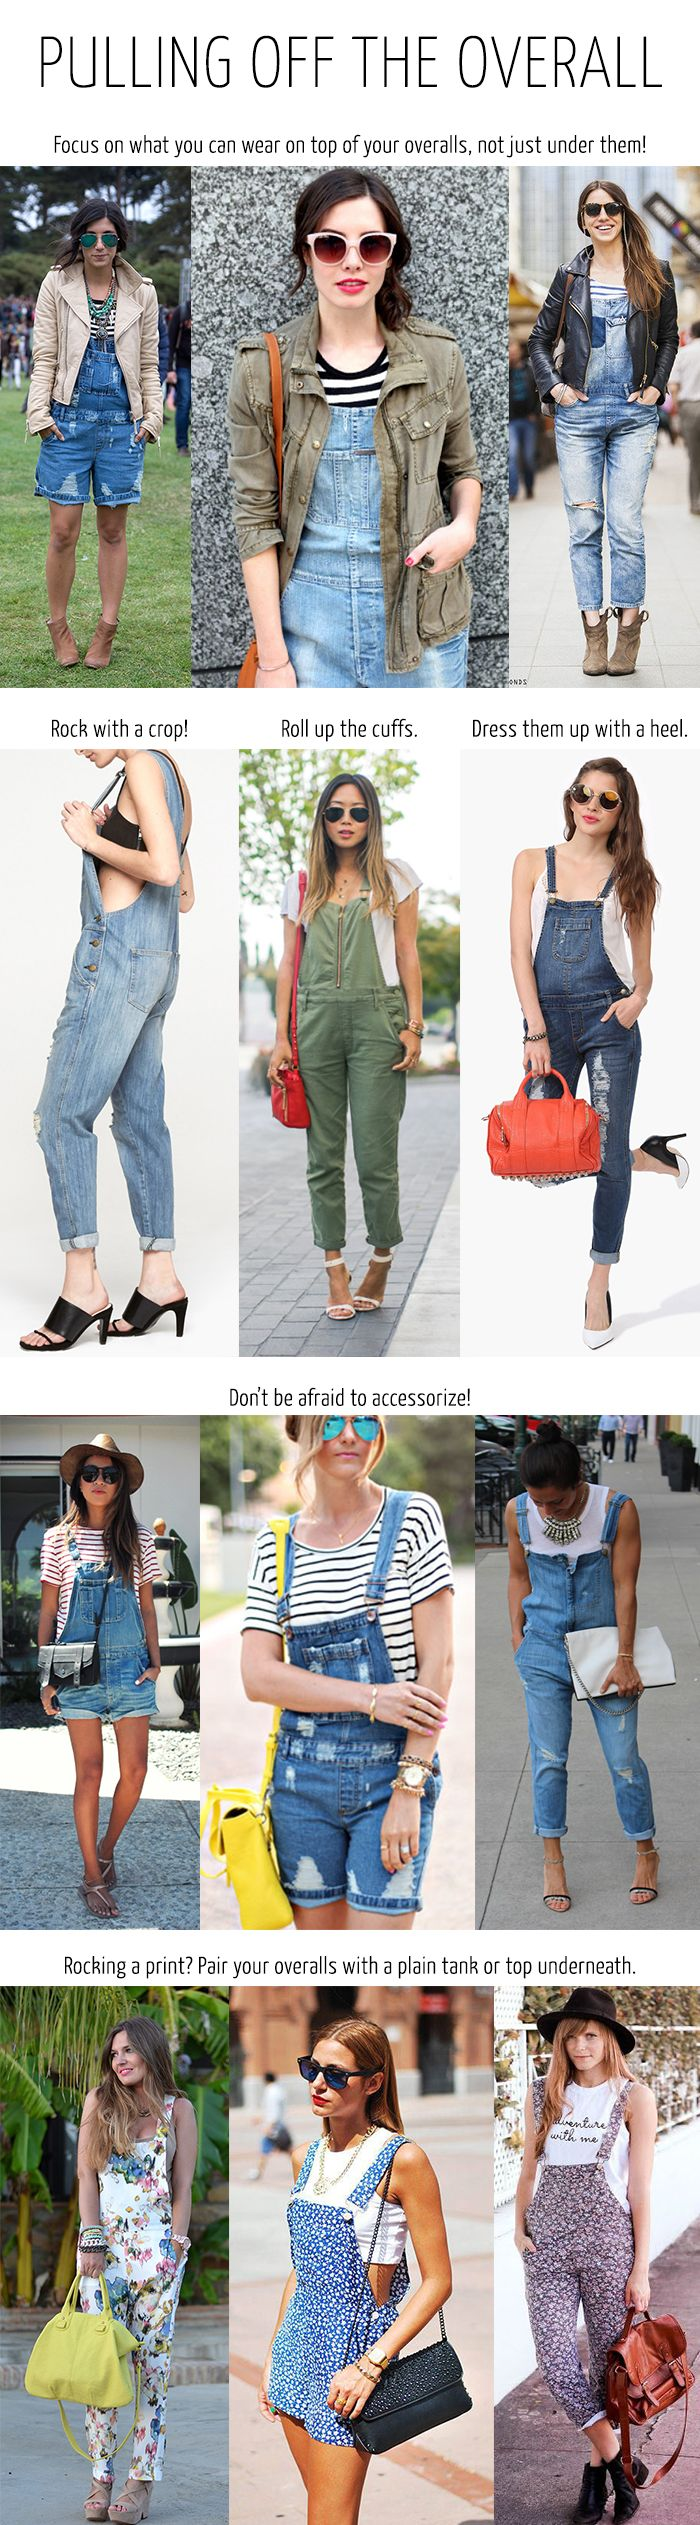 How to Wear Overalls #Fashion #Overalls #CorriStyleHelp #HowtoWear